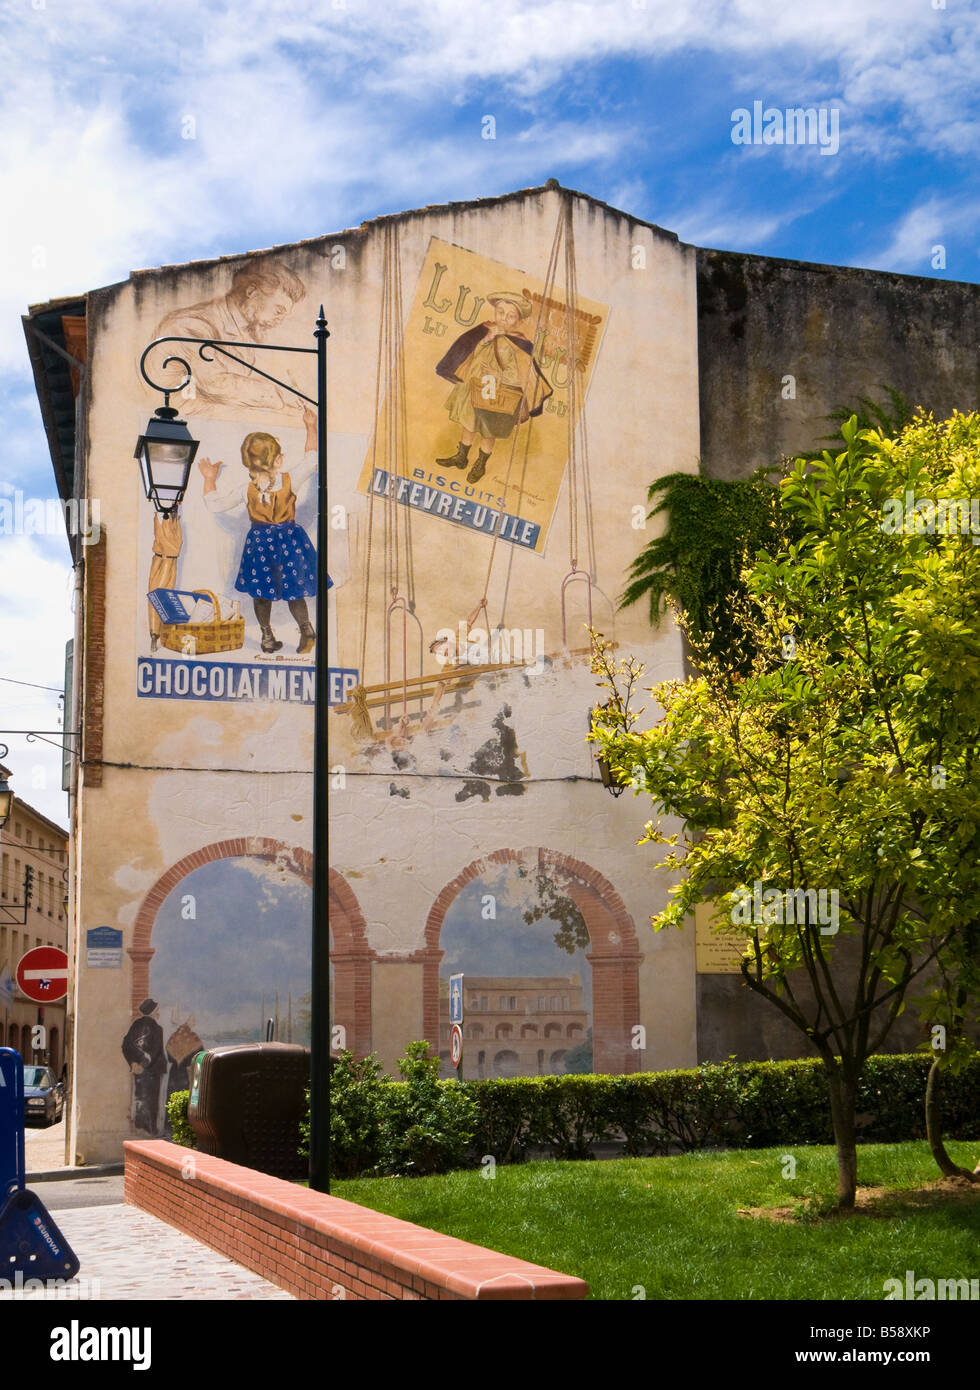 Vintage French advertising posters painted as a street art mural in Moissac Tarn et Garonne France Europe - Stock Image